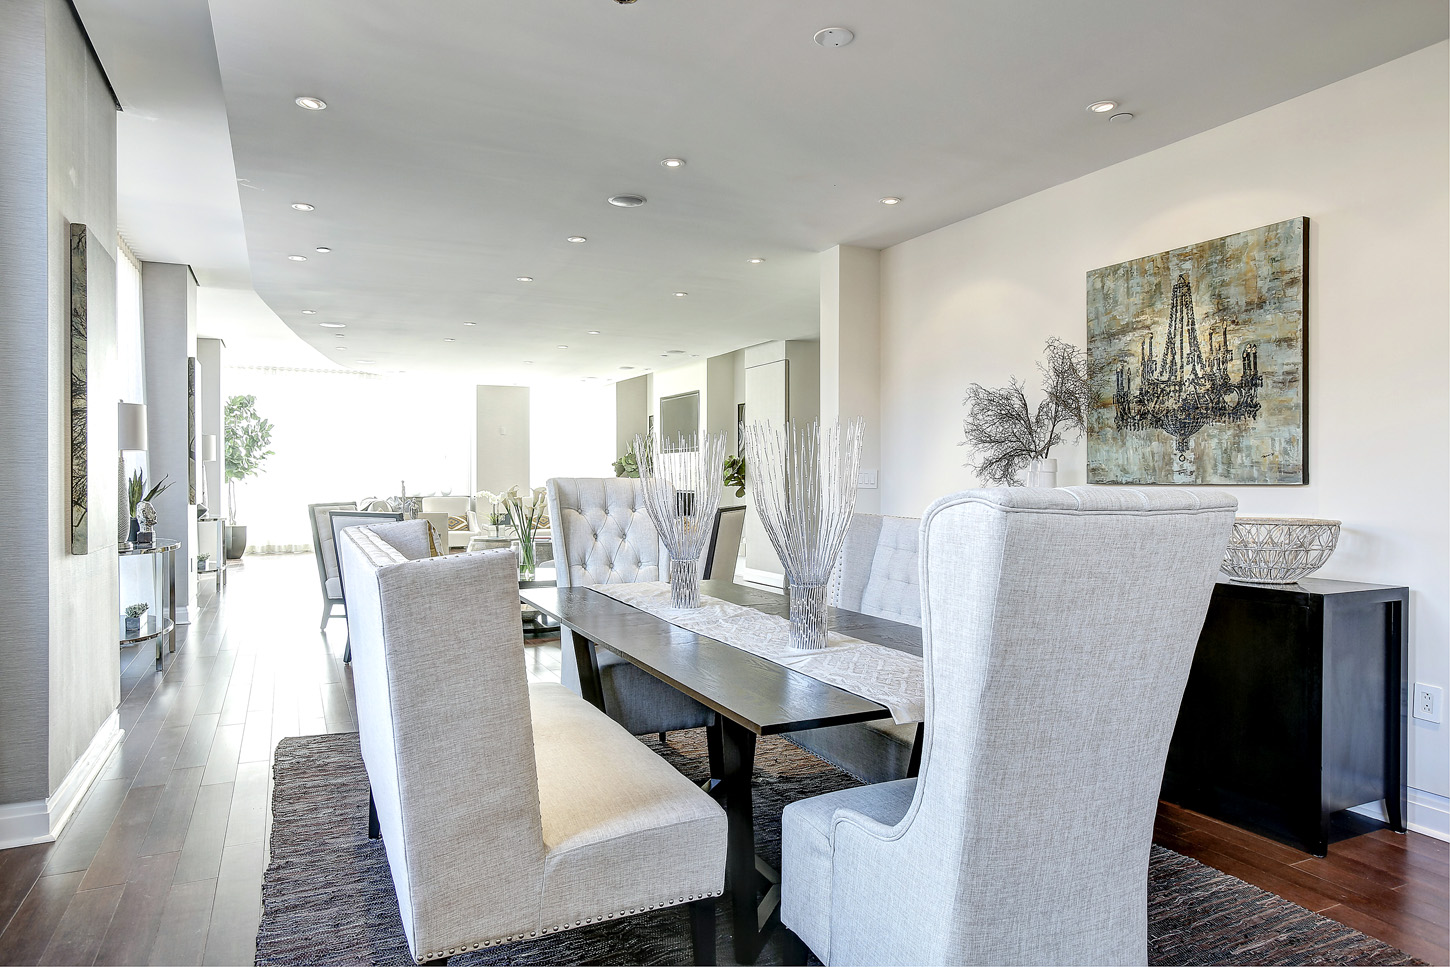 We Love Banquette Seating Part 3 Of Our Series On